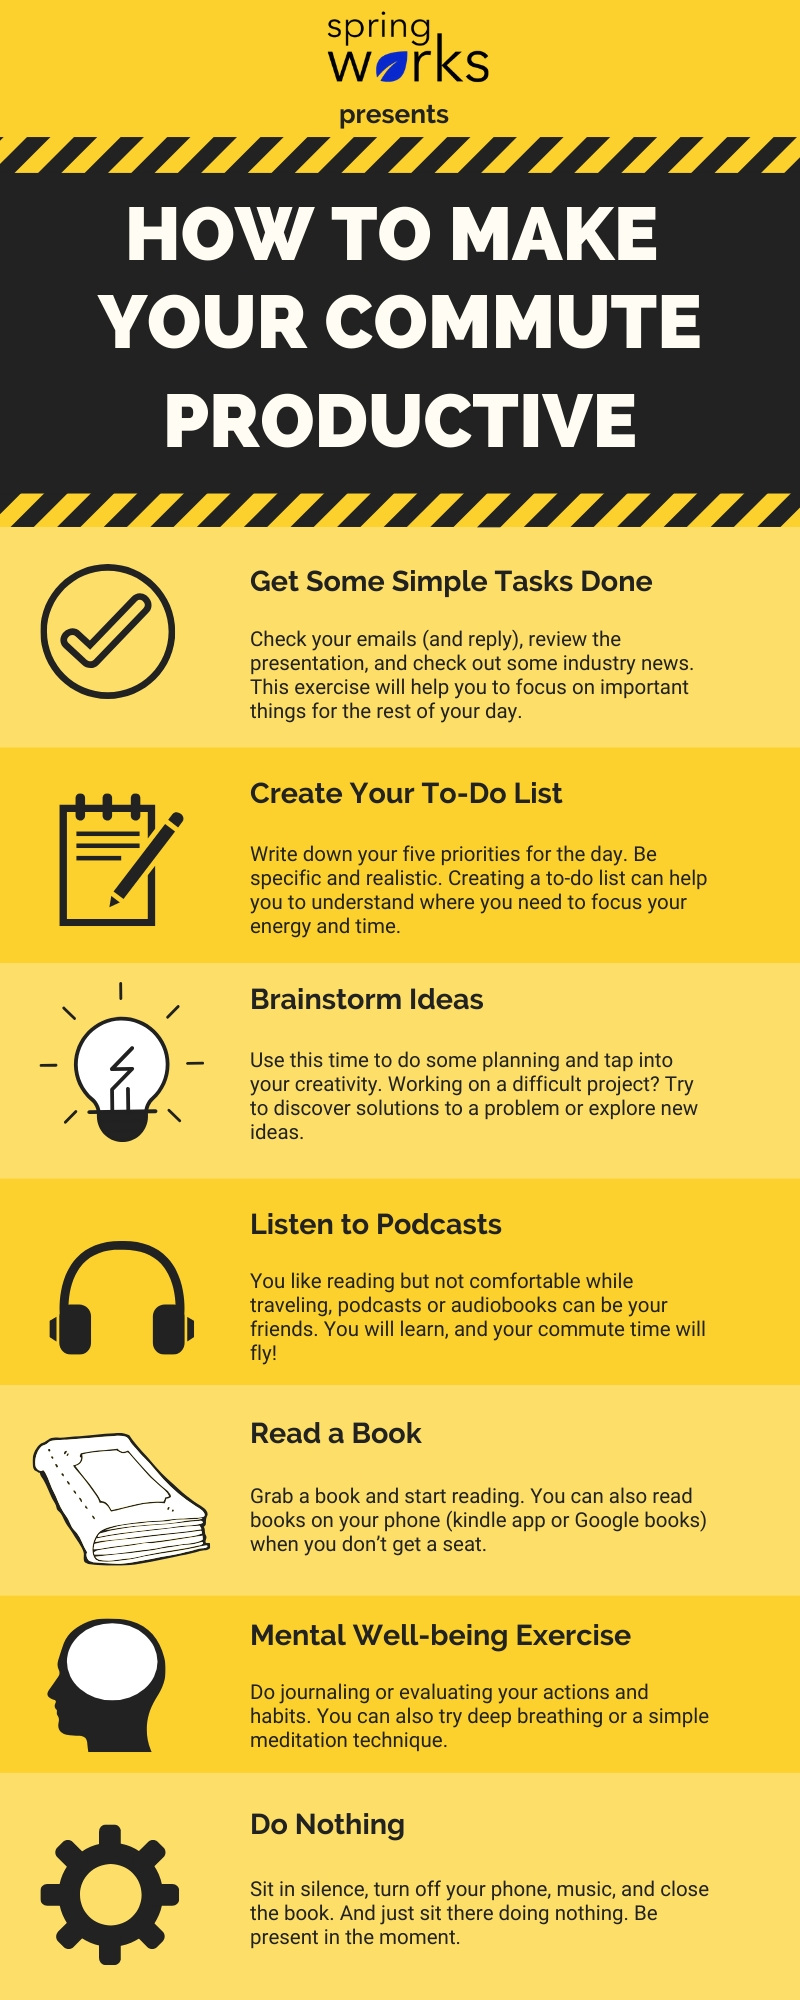 how to make your commute productive